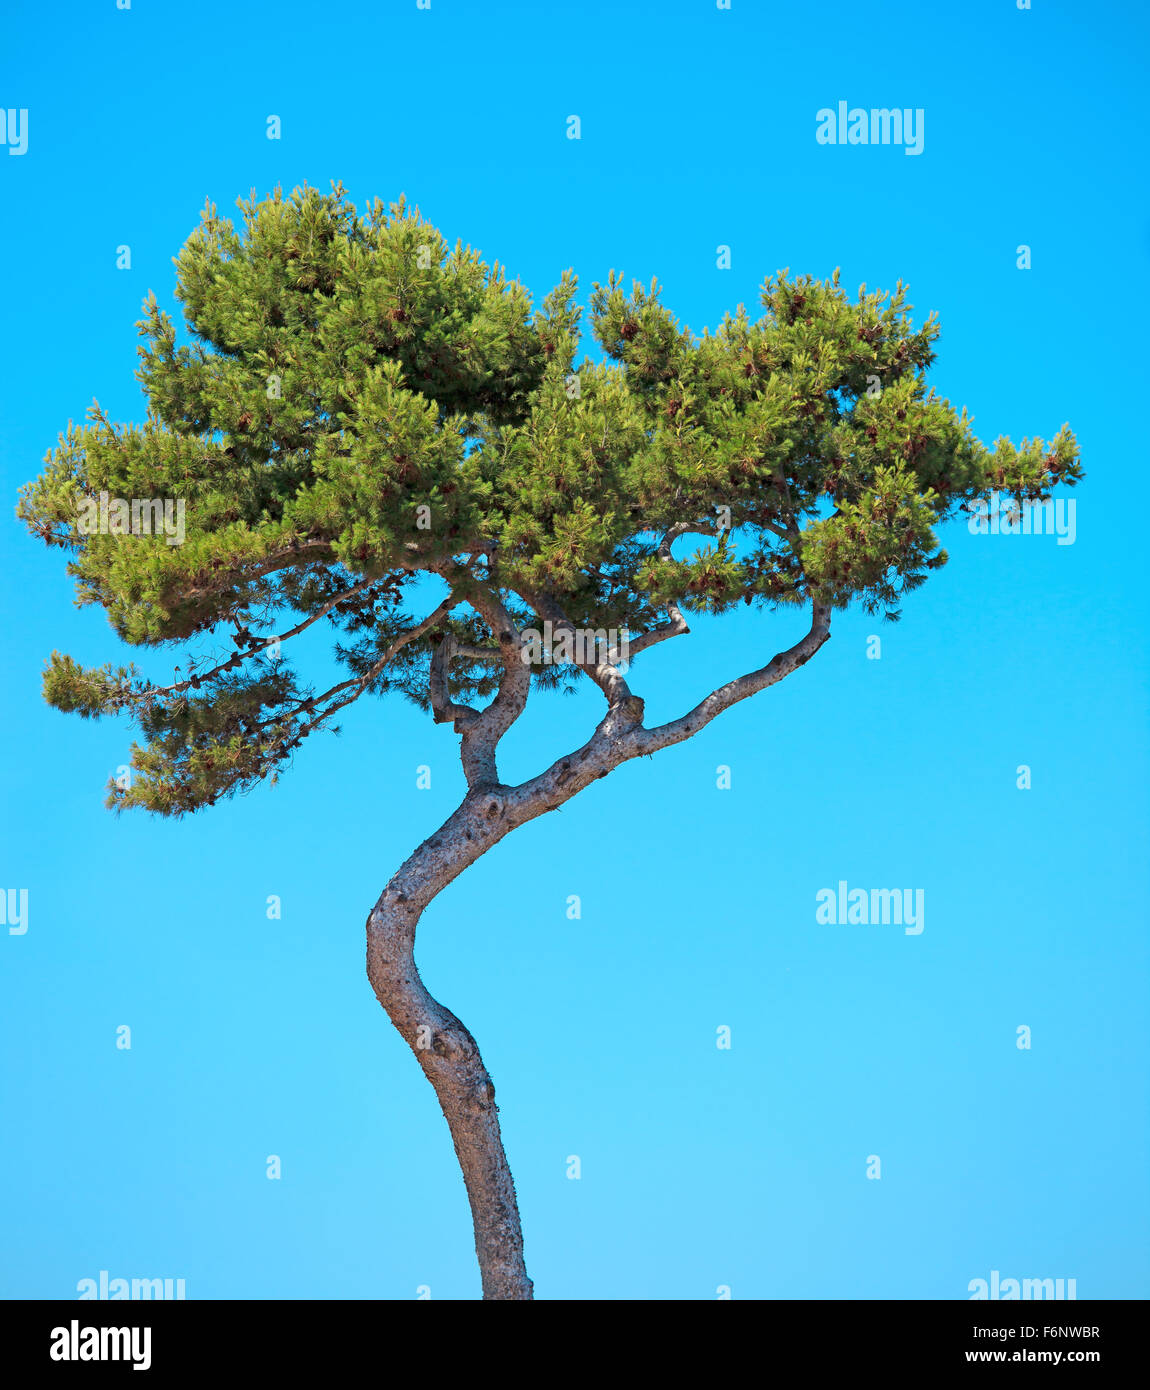 Maritime Pine curved tree, Pinus Pinaster mediterranean plant, isolated on blue sky background. Juan les Pins, Provence, - Stock Image